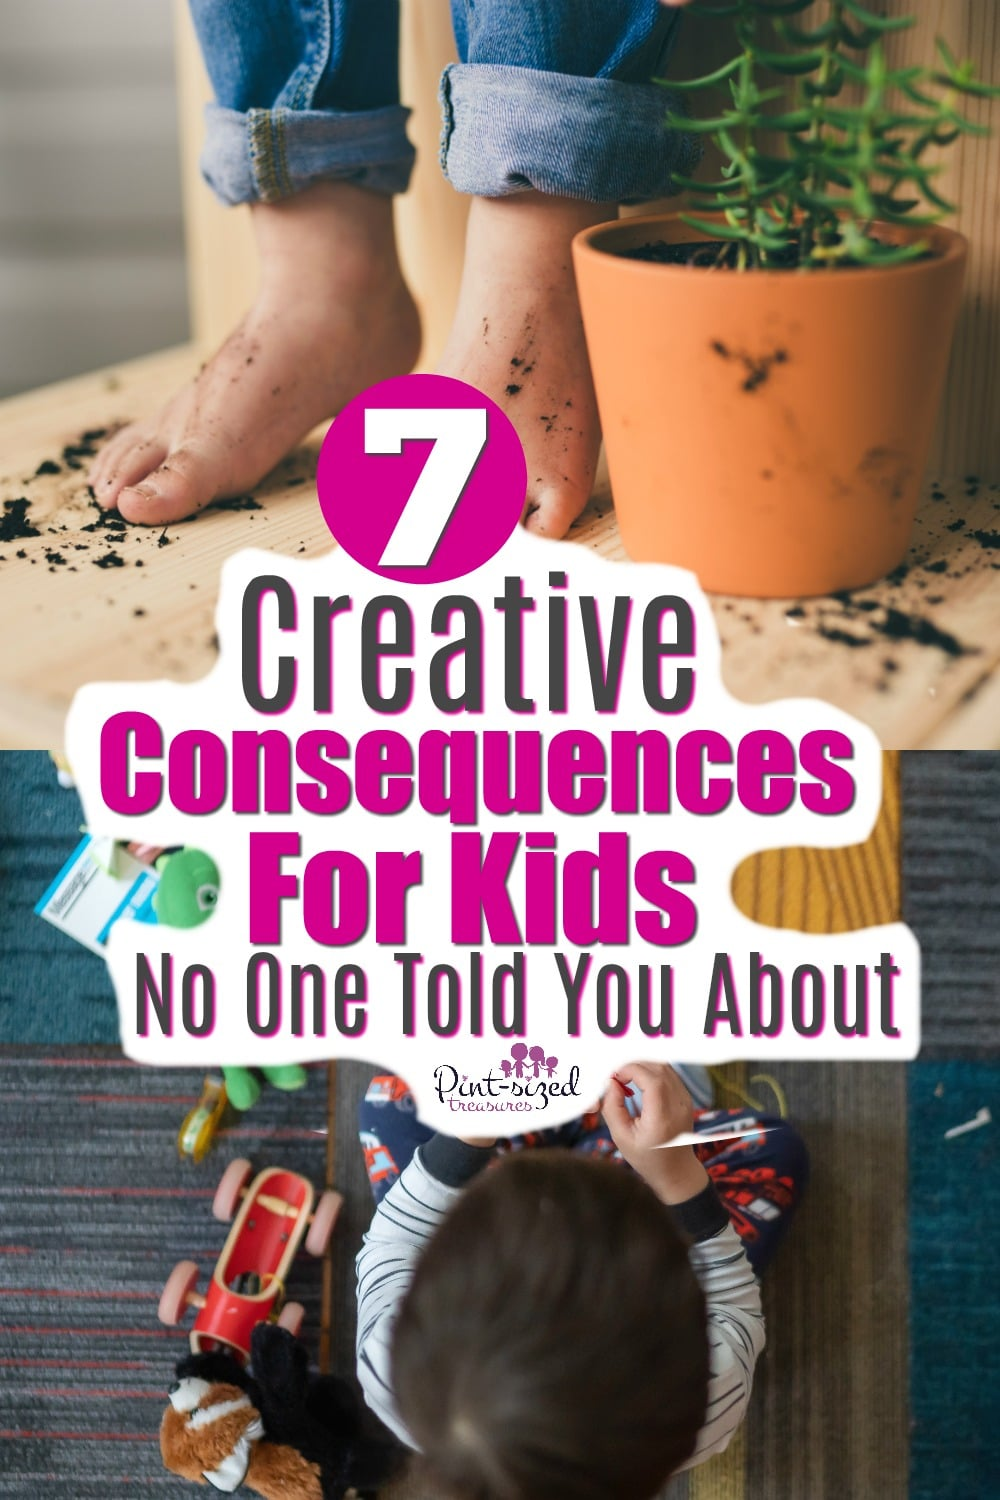 Creative Consequences for Kids